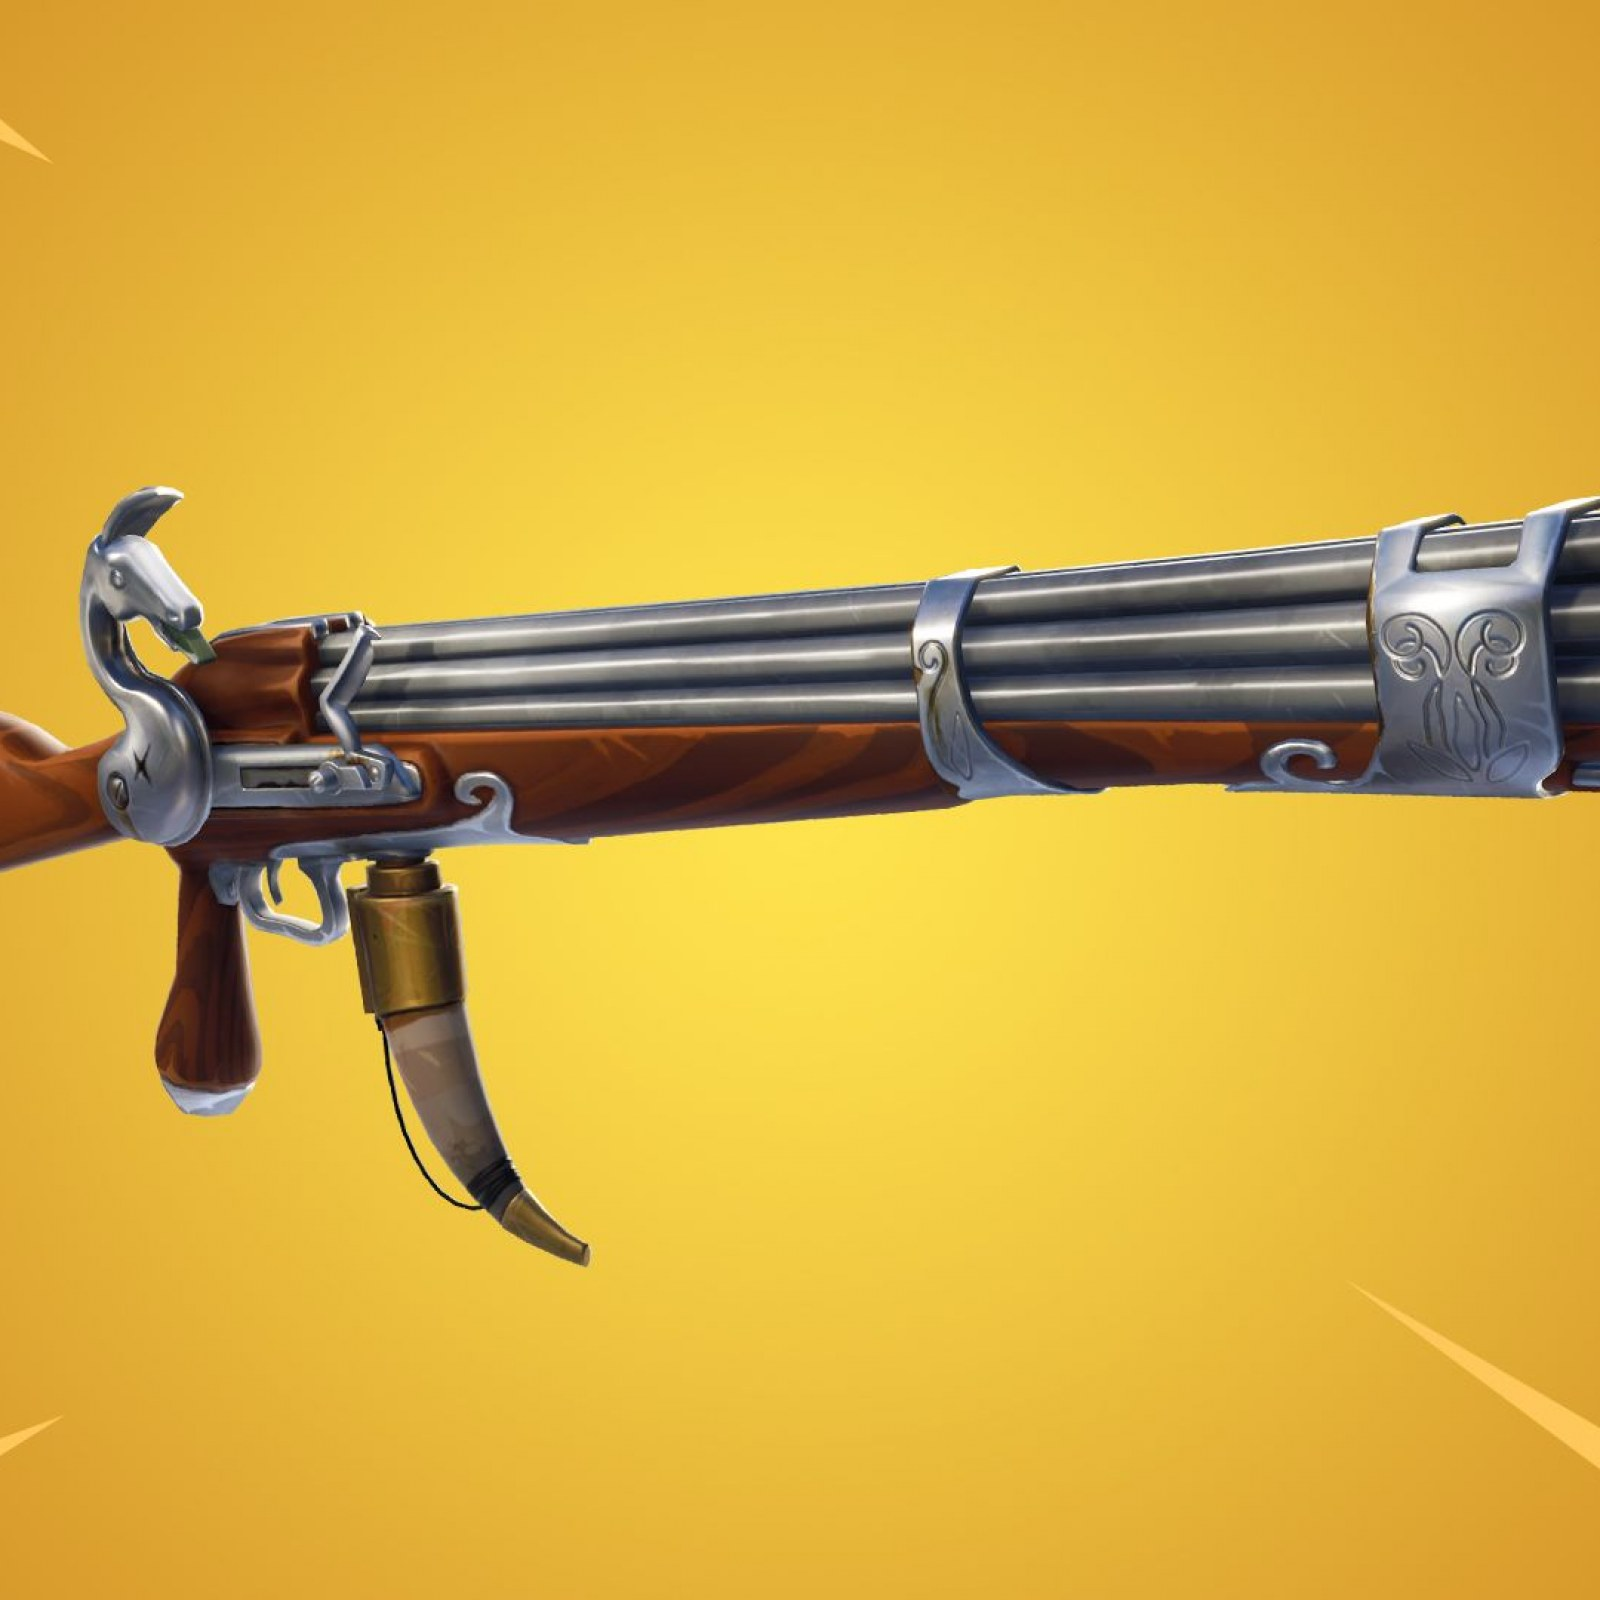 Ranking The Most Powerful Weapons In Fortnite - Bbcreamqueen com